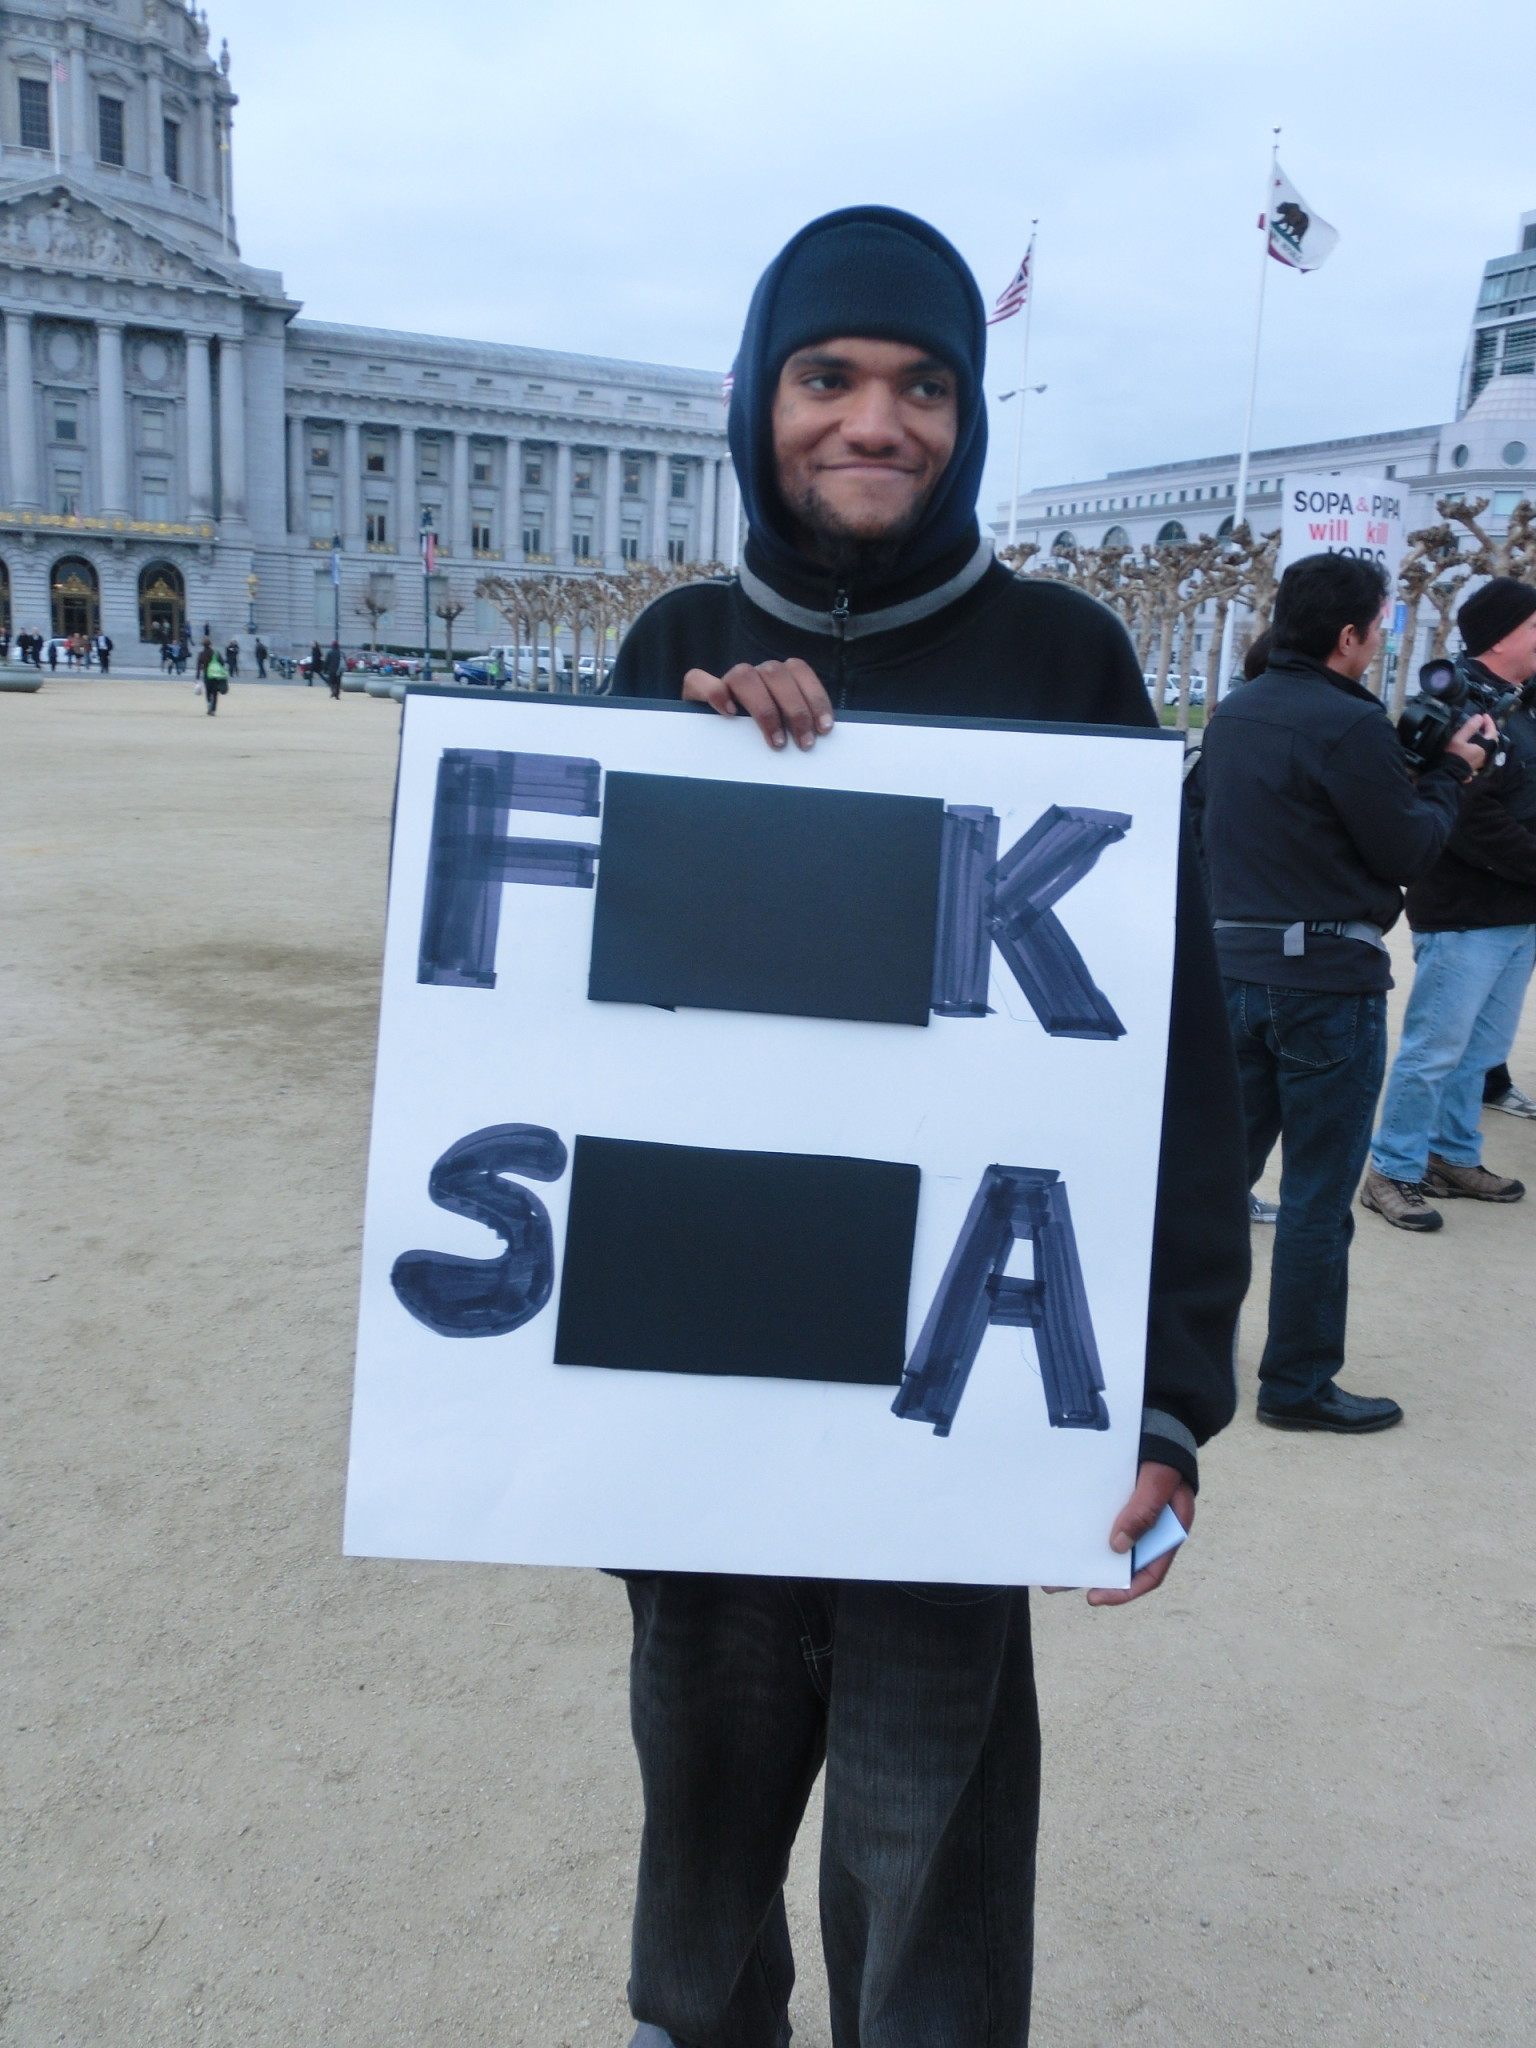 SOPA demonstration i San Francisco med tech-eliten